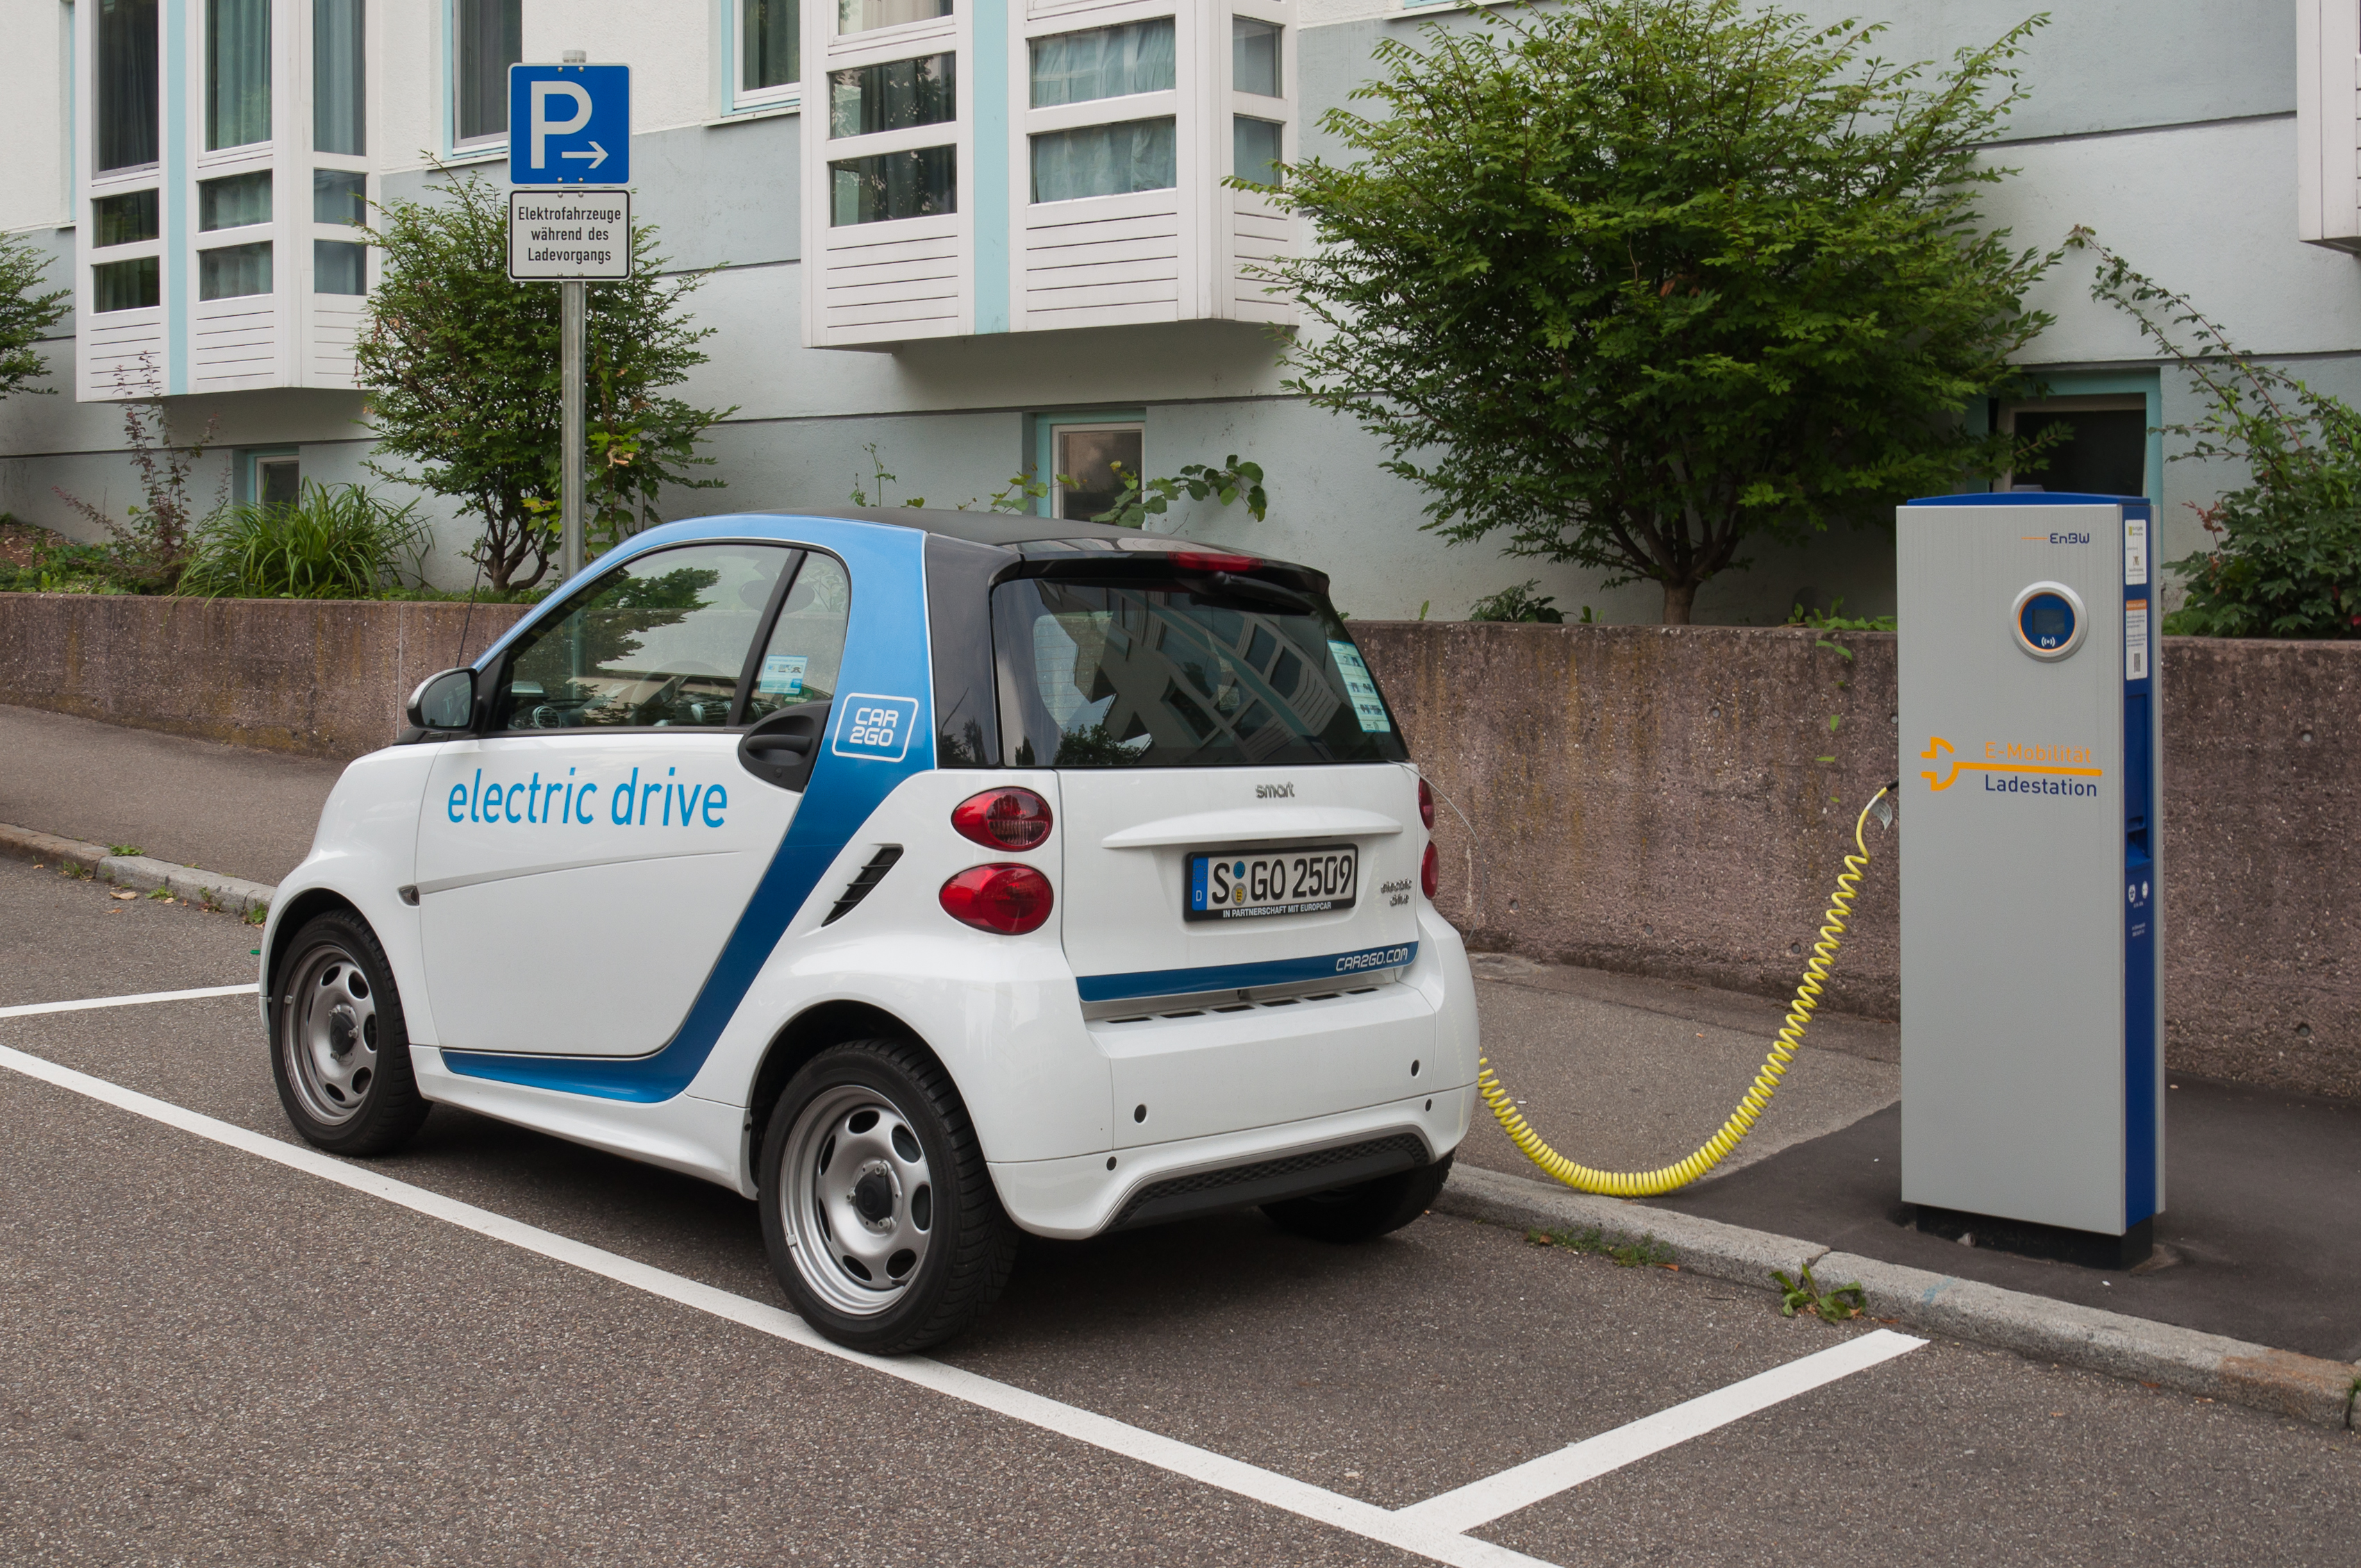 an image of electric%20cars Smart electric drive